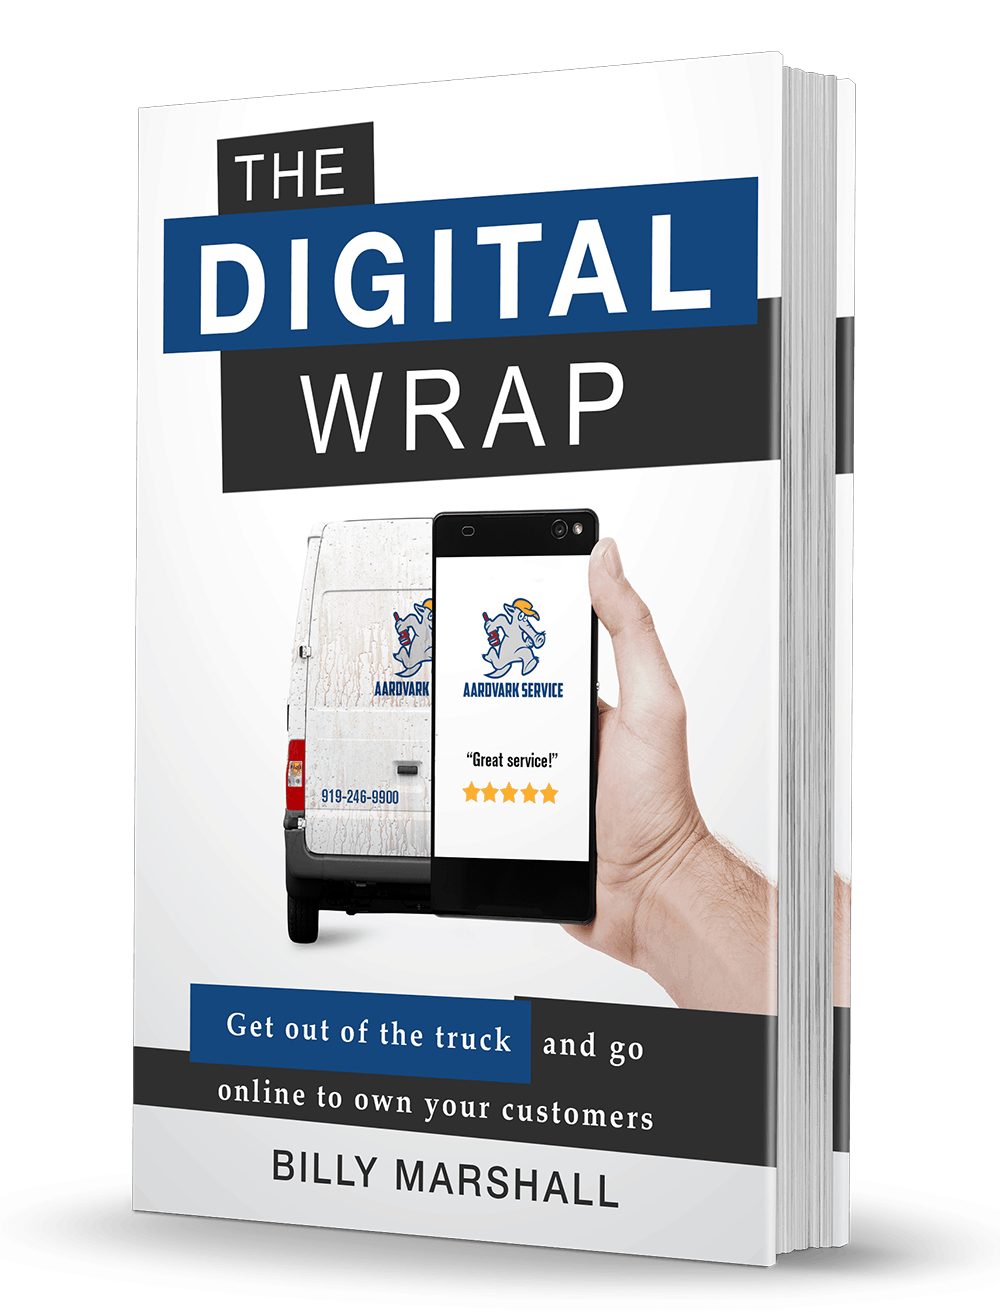 The Digital Wrap